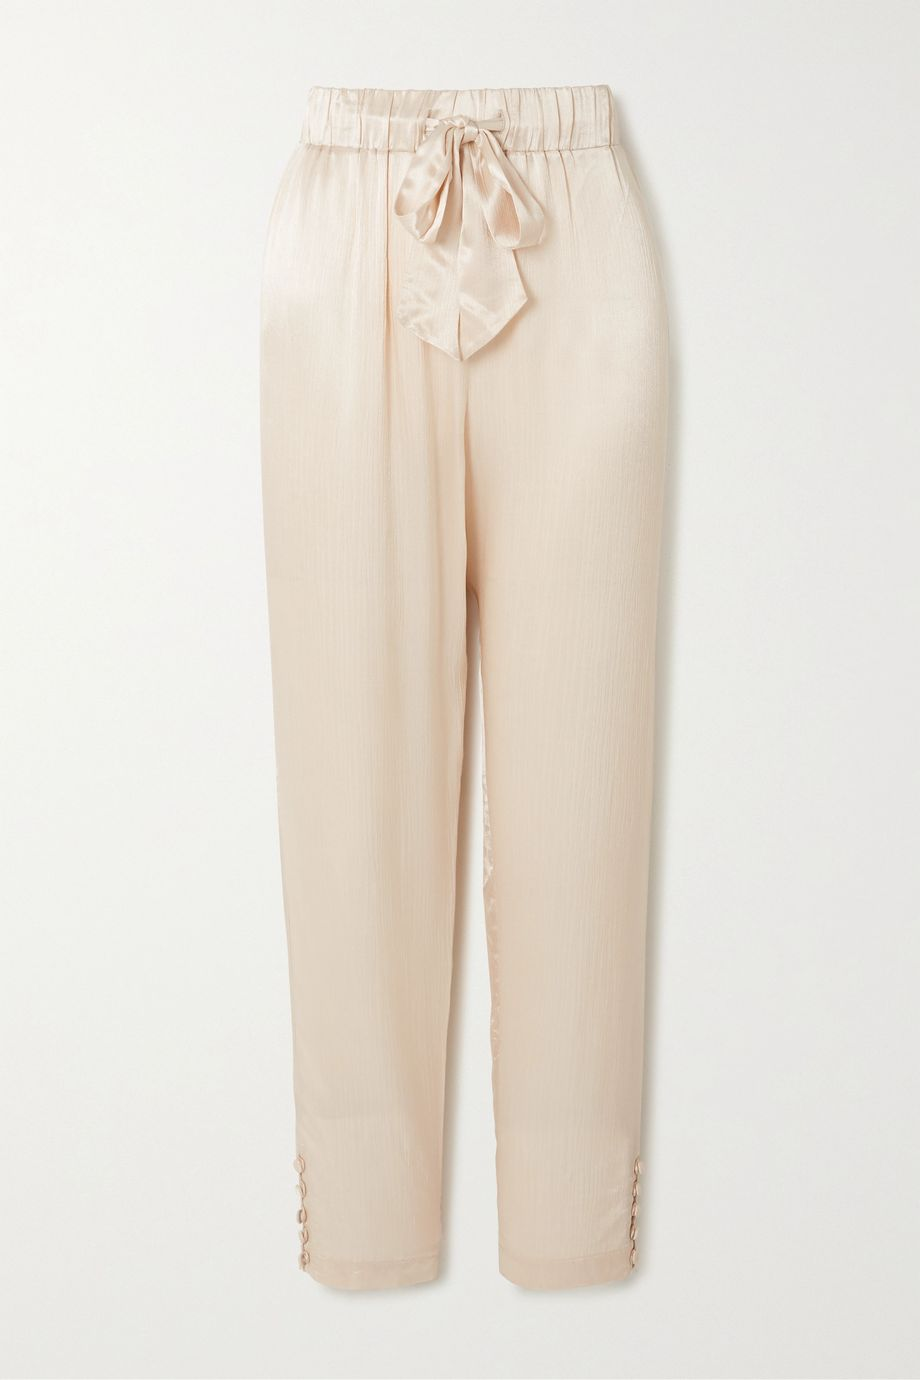 Envelope1976 + NET SUSTAIN Goe textured-satin tapered pants